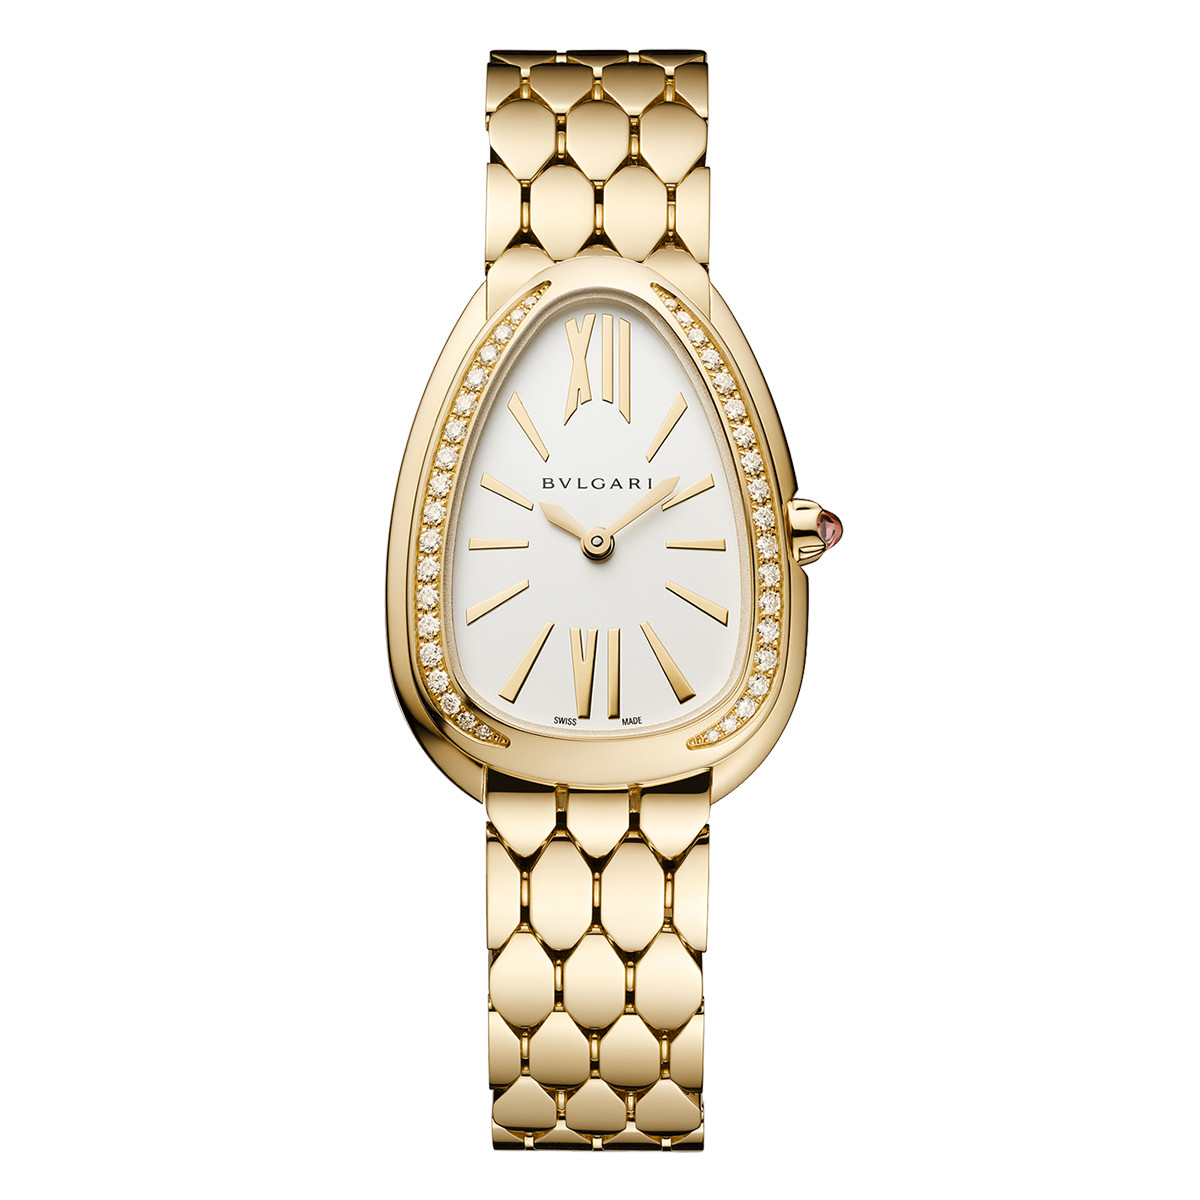 Serpenti Seduttori Yellow Gold & Diamonds (103147)